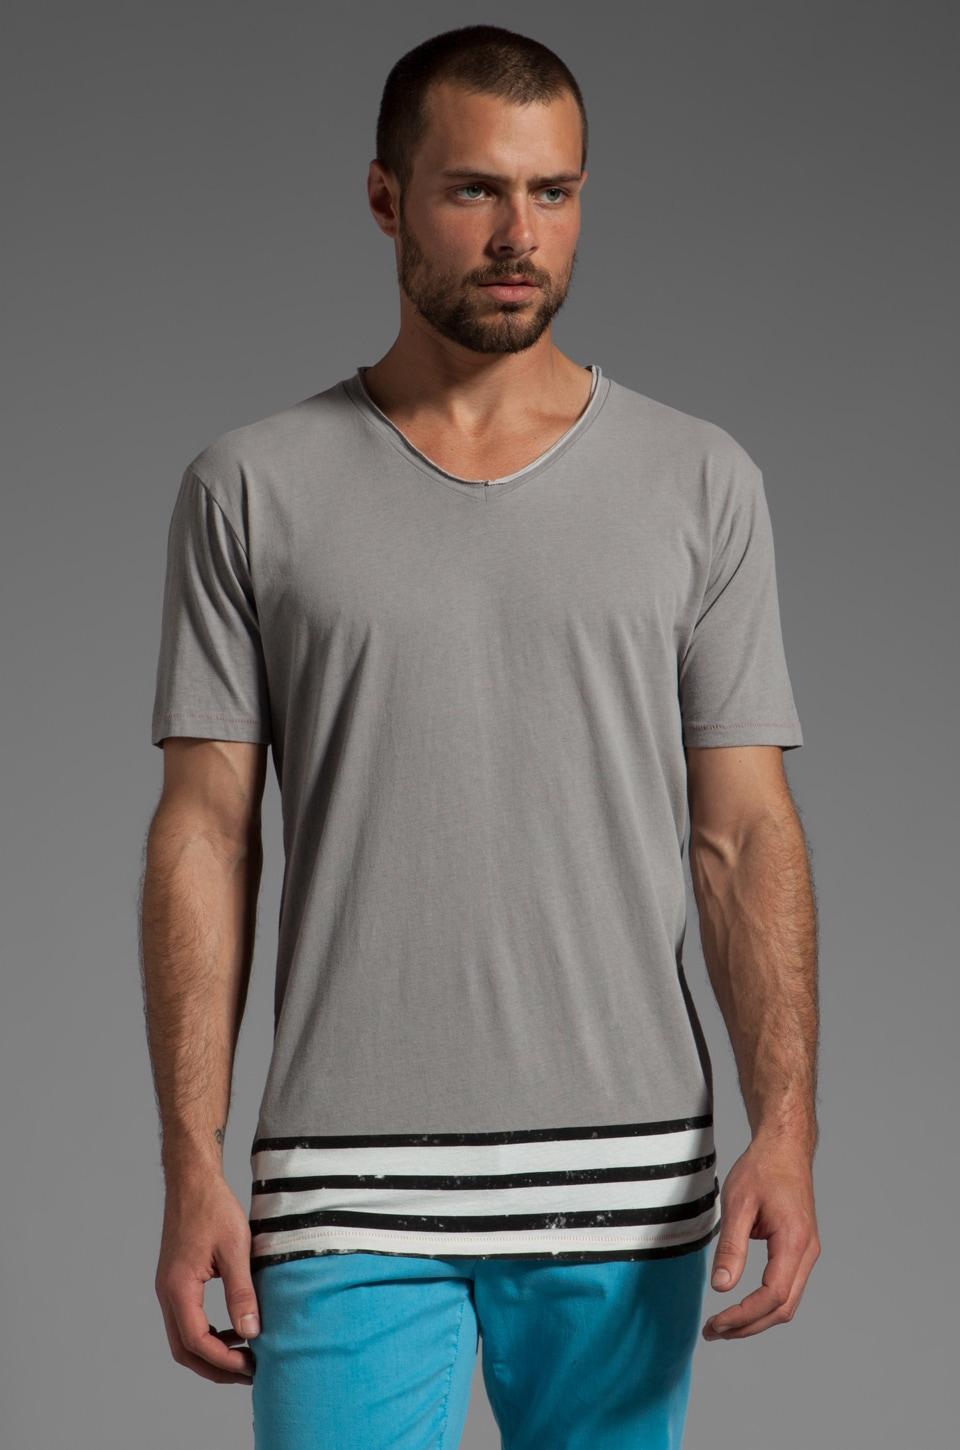 Cohesive & co. Intrepid S/S V-Neck Tee in Light Grey